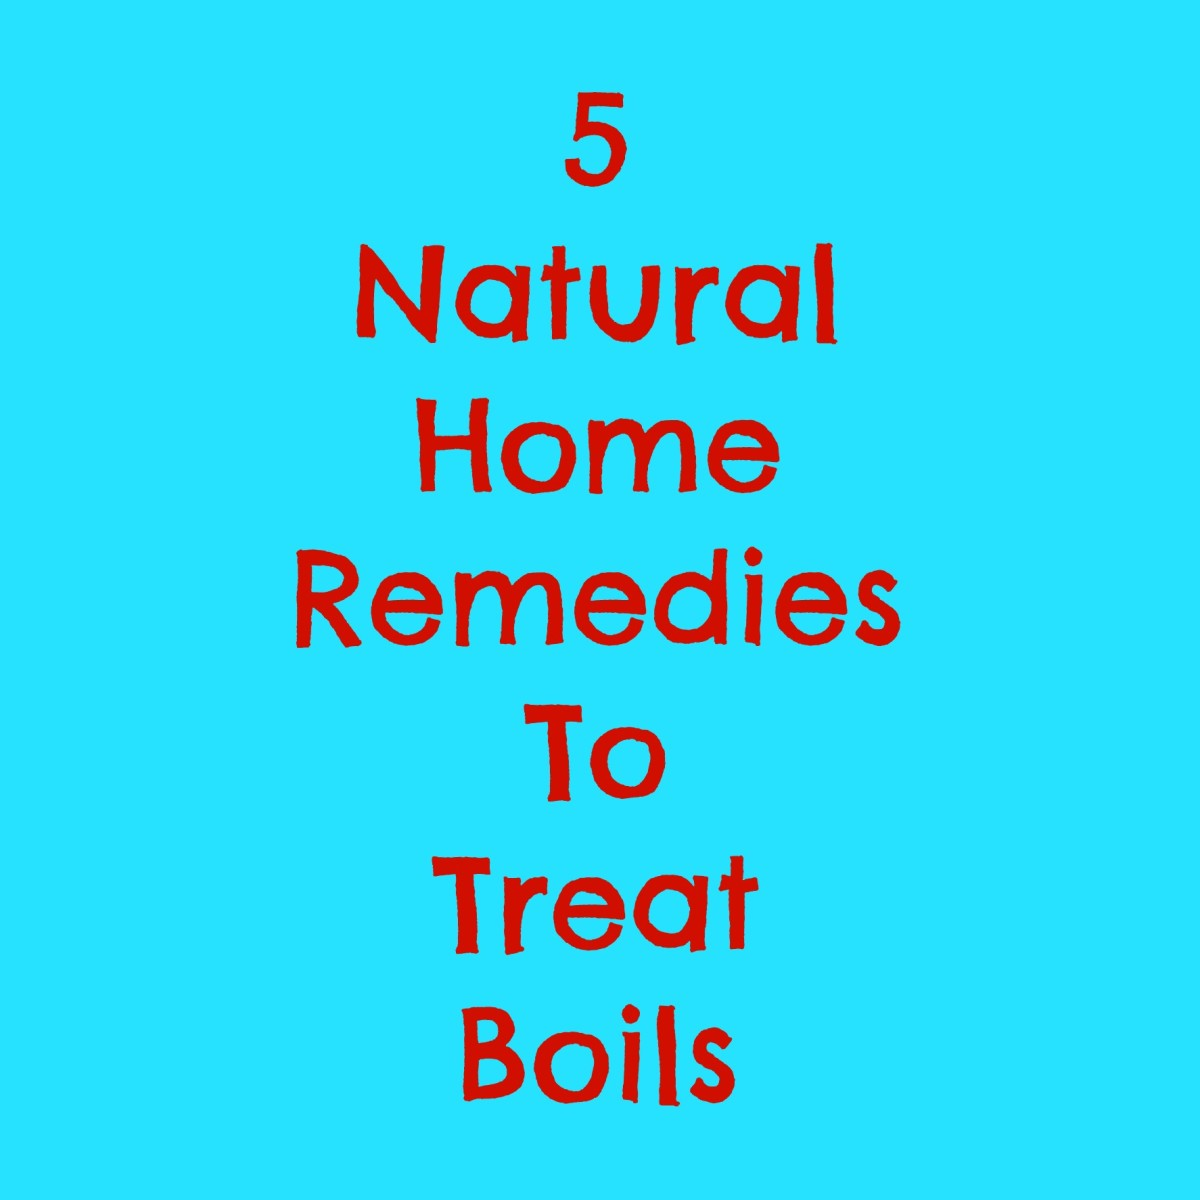 5-natural-remedies-for-boils